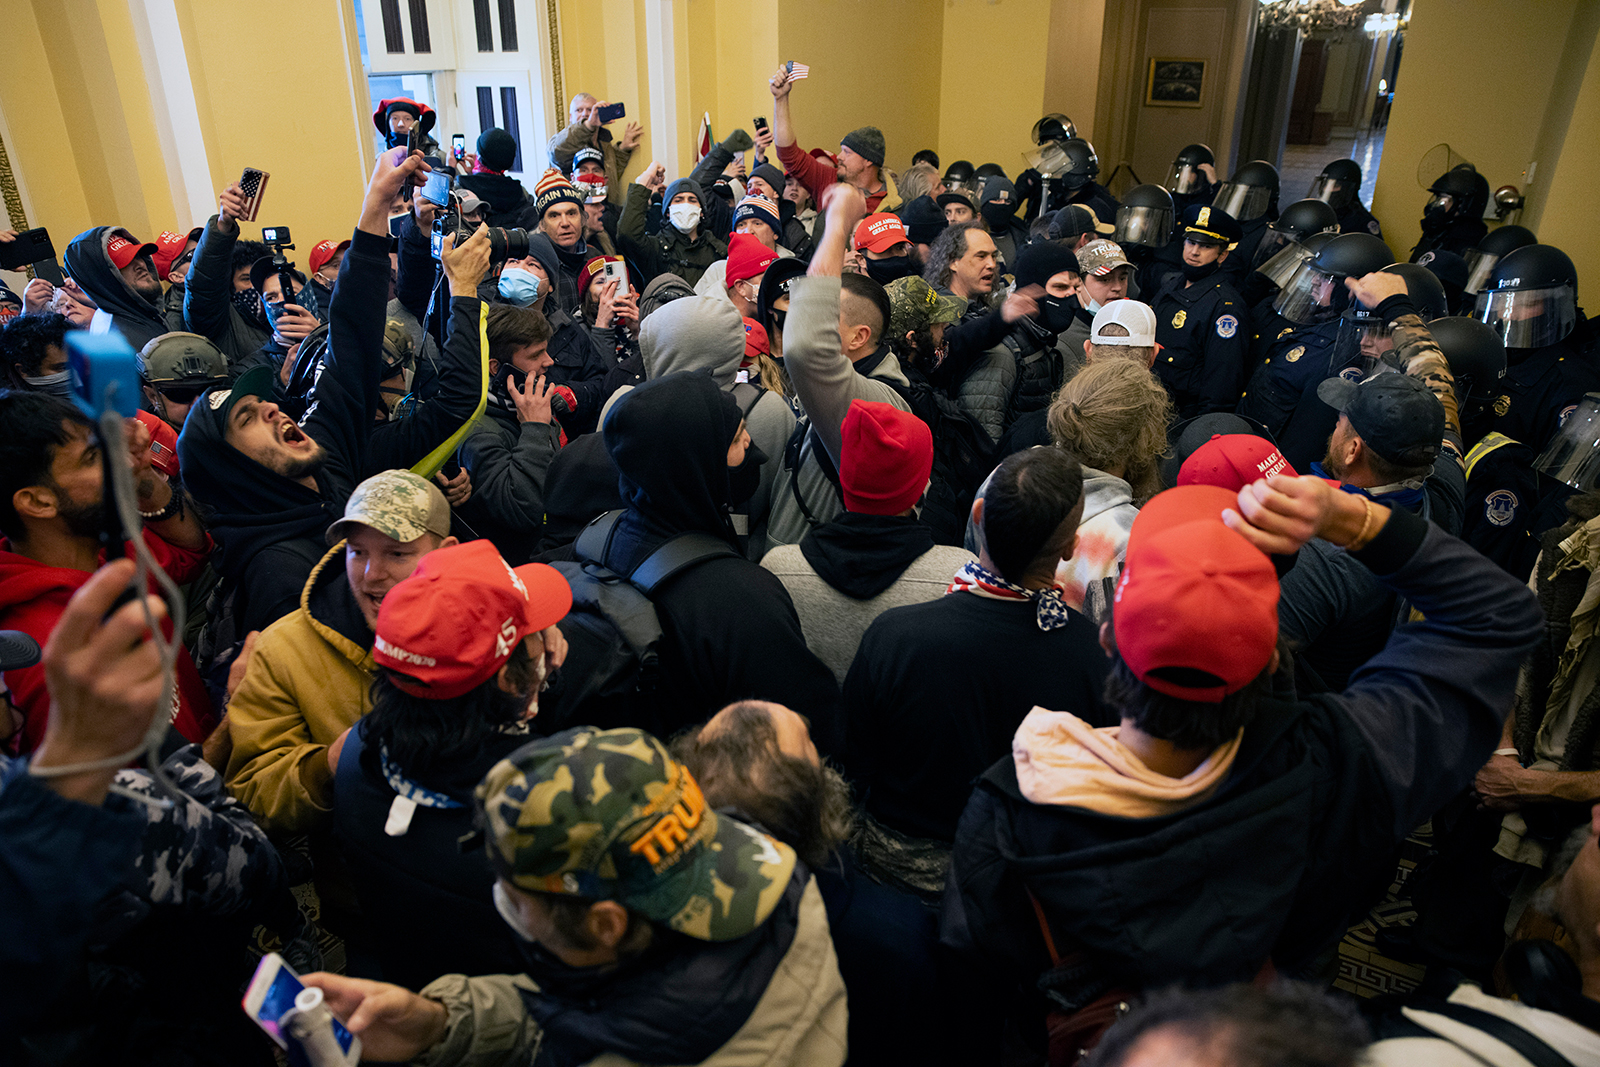 Supporters of US President Donald Trump protest inside the US Capitol in Washington, DC, on January 6.